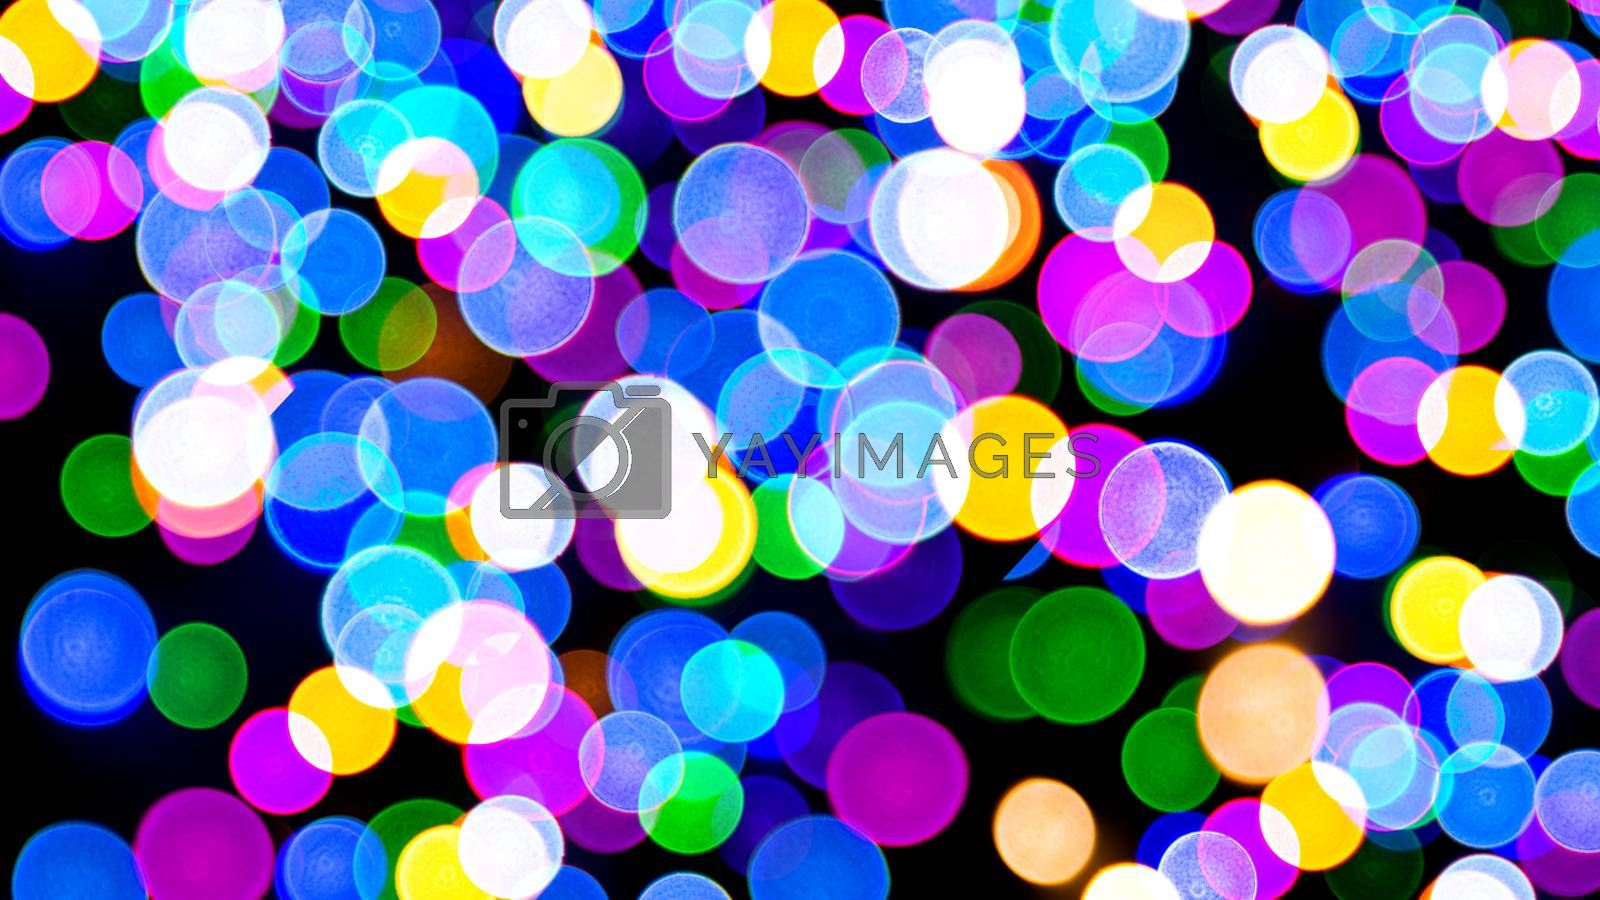 Abstract Light Bokeh Background, Christmas concept Xmas greeting card. Magic holiday poster, banner